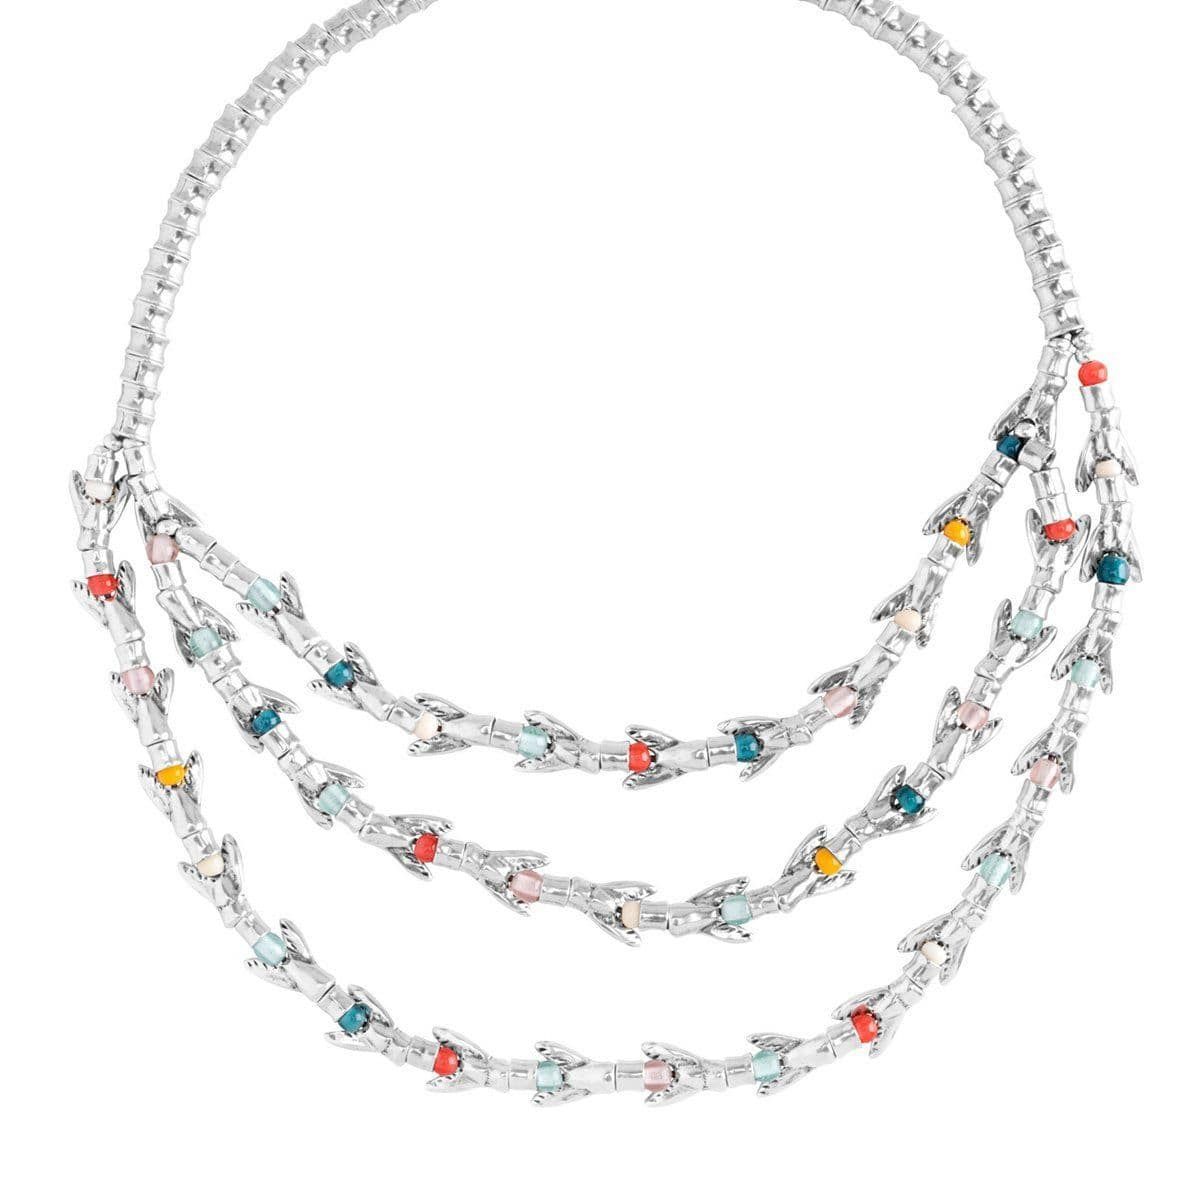 Tricola Silver Layered Necklace - COL1131MCLMTL0U